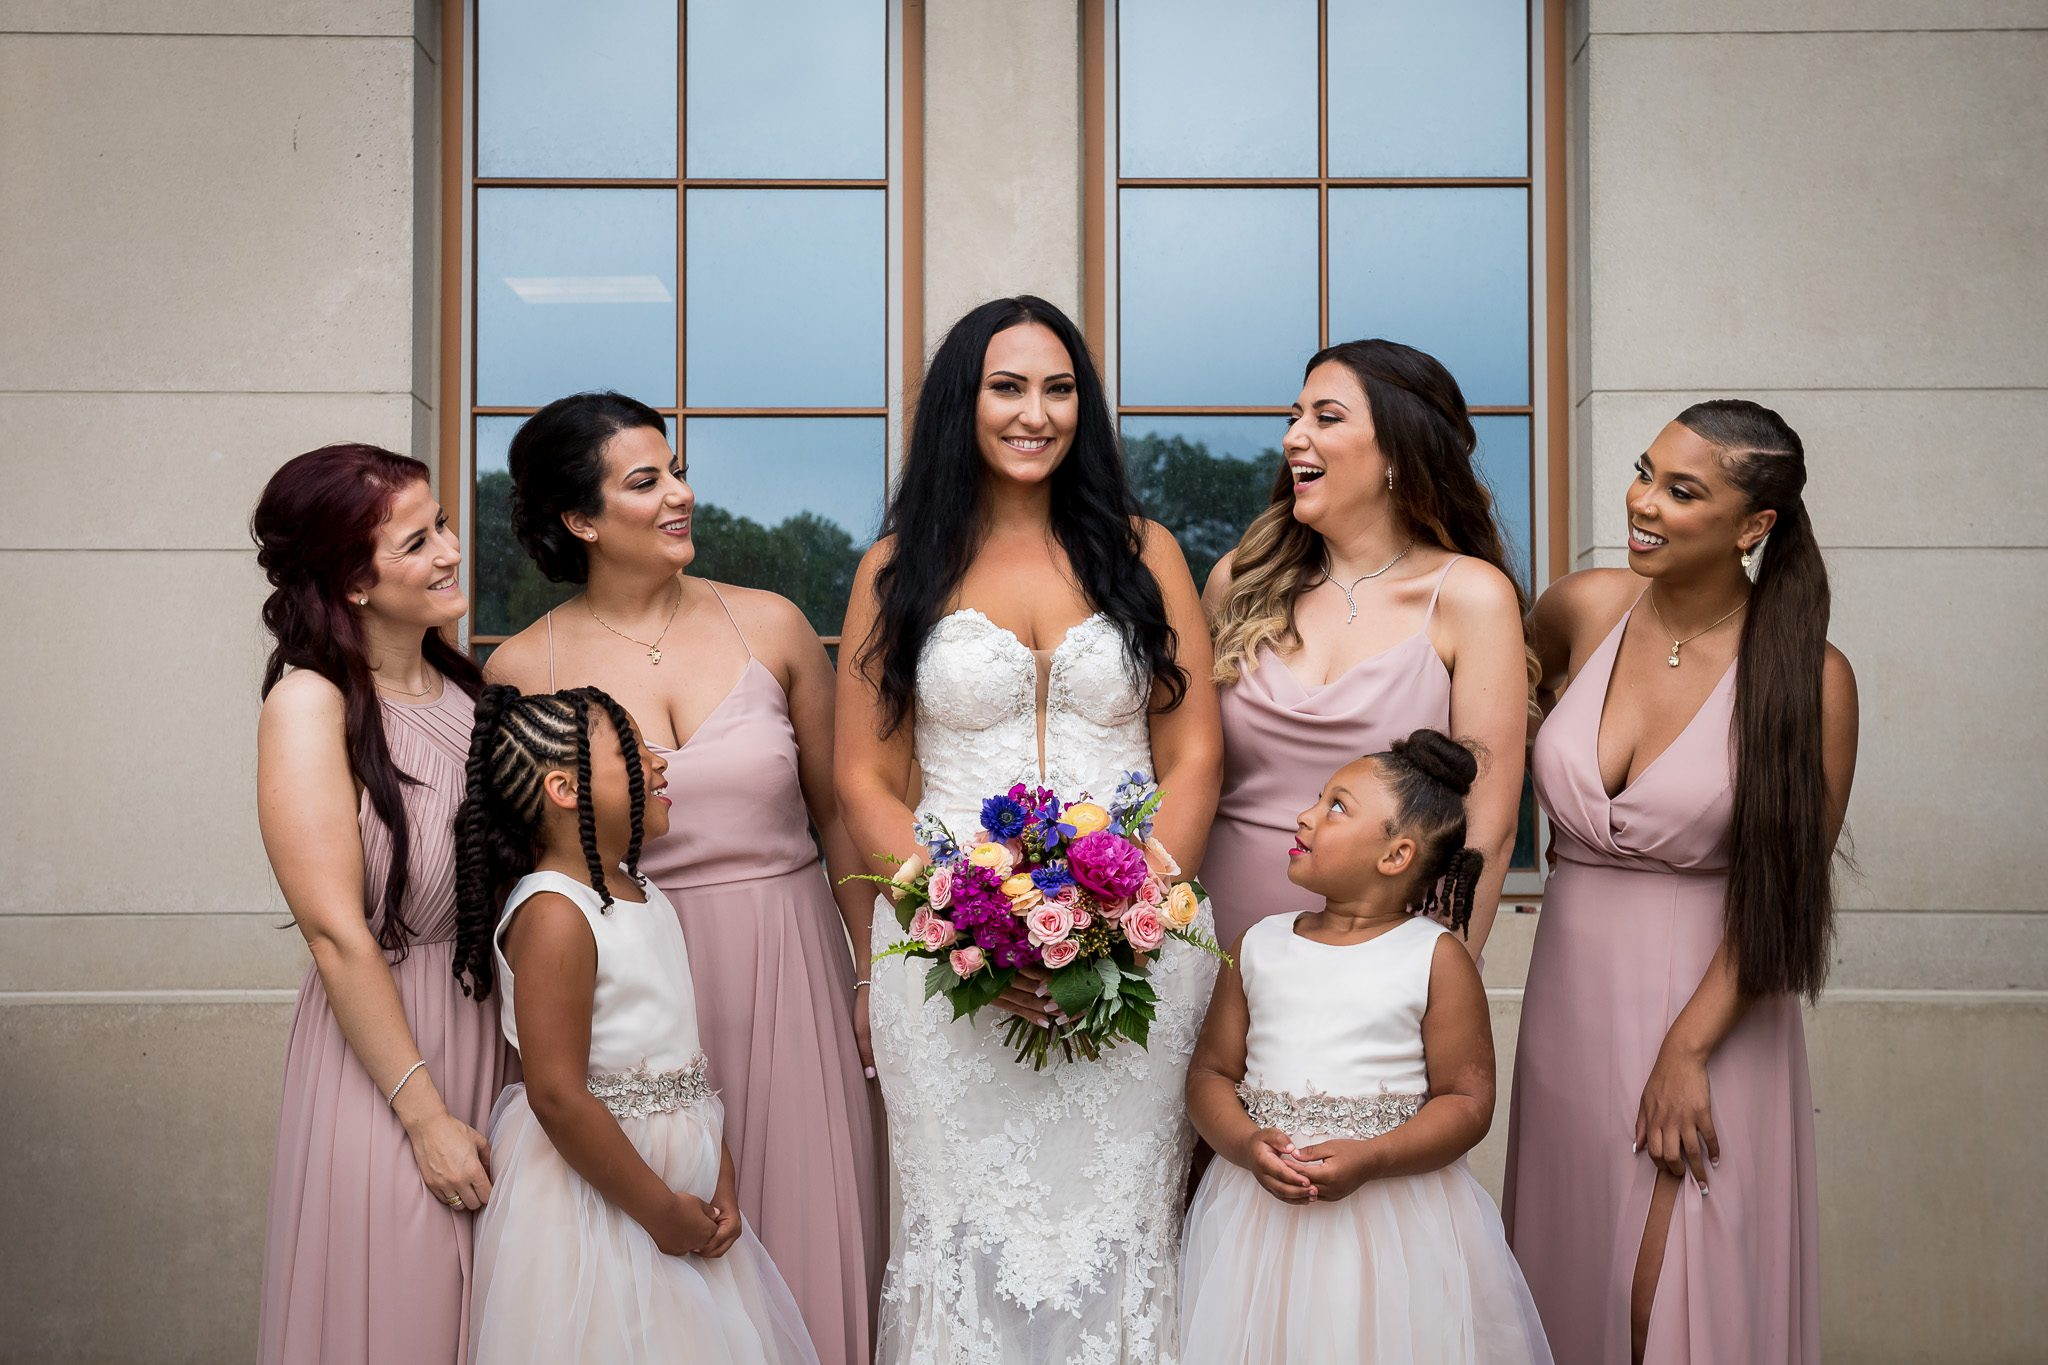 Bridesmaids pose together and laugh together during a beautiful backyard wedding in MN.